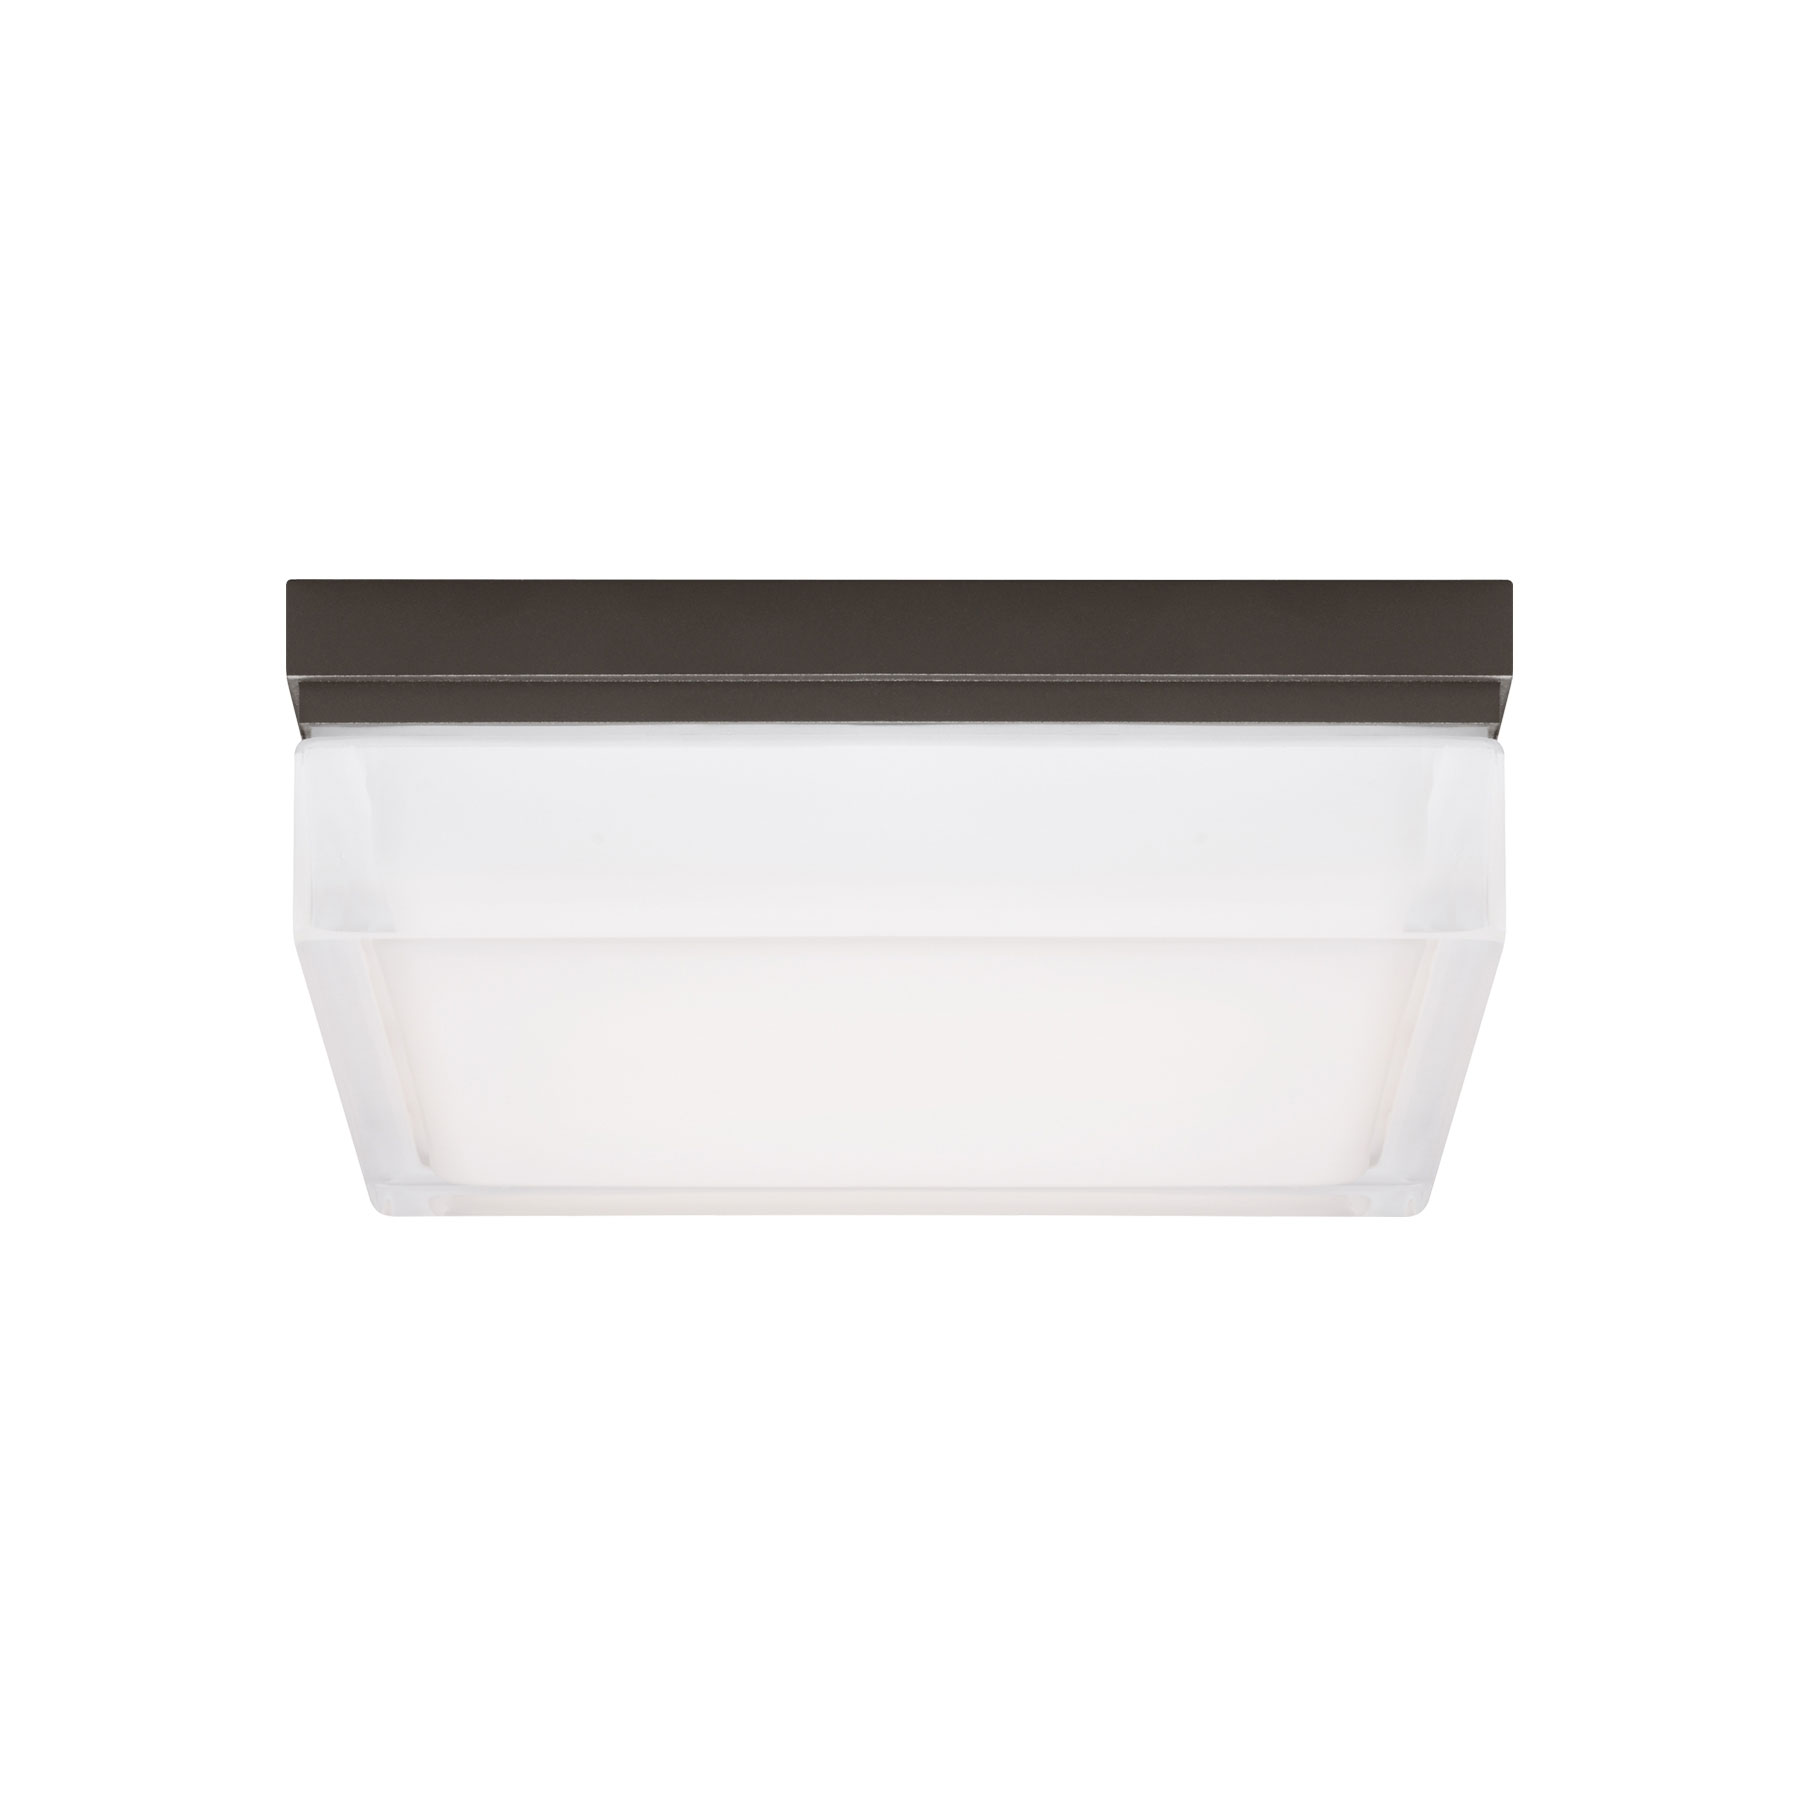 Boxie Outdoor Wall - Ceiling Light Fixture